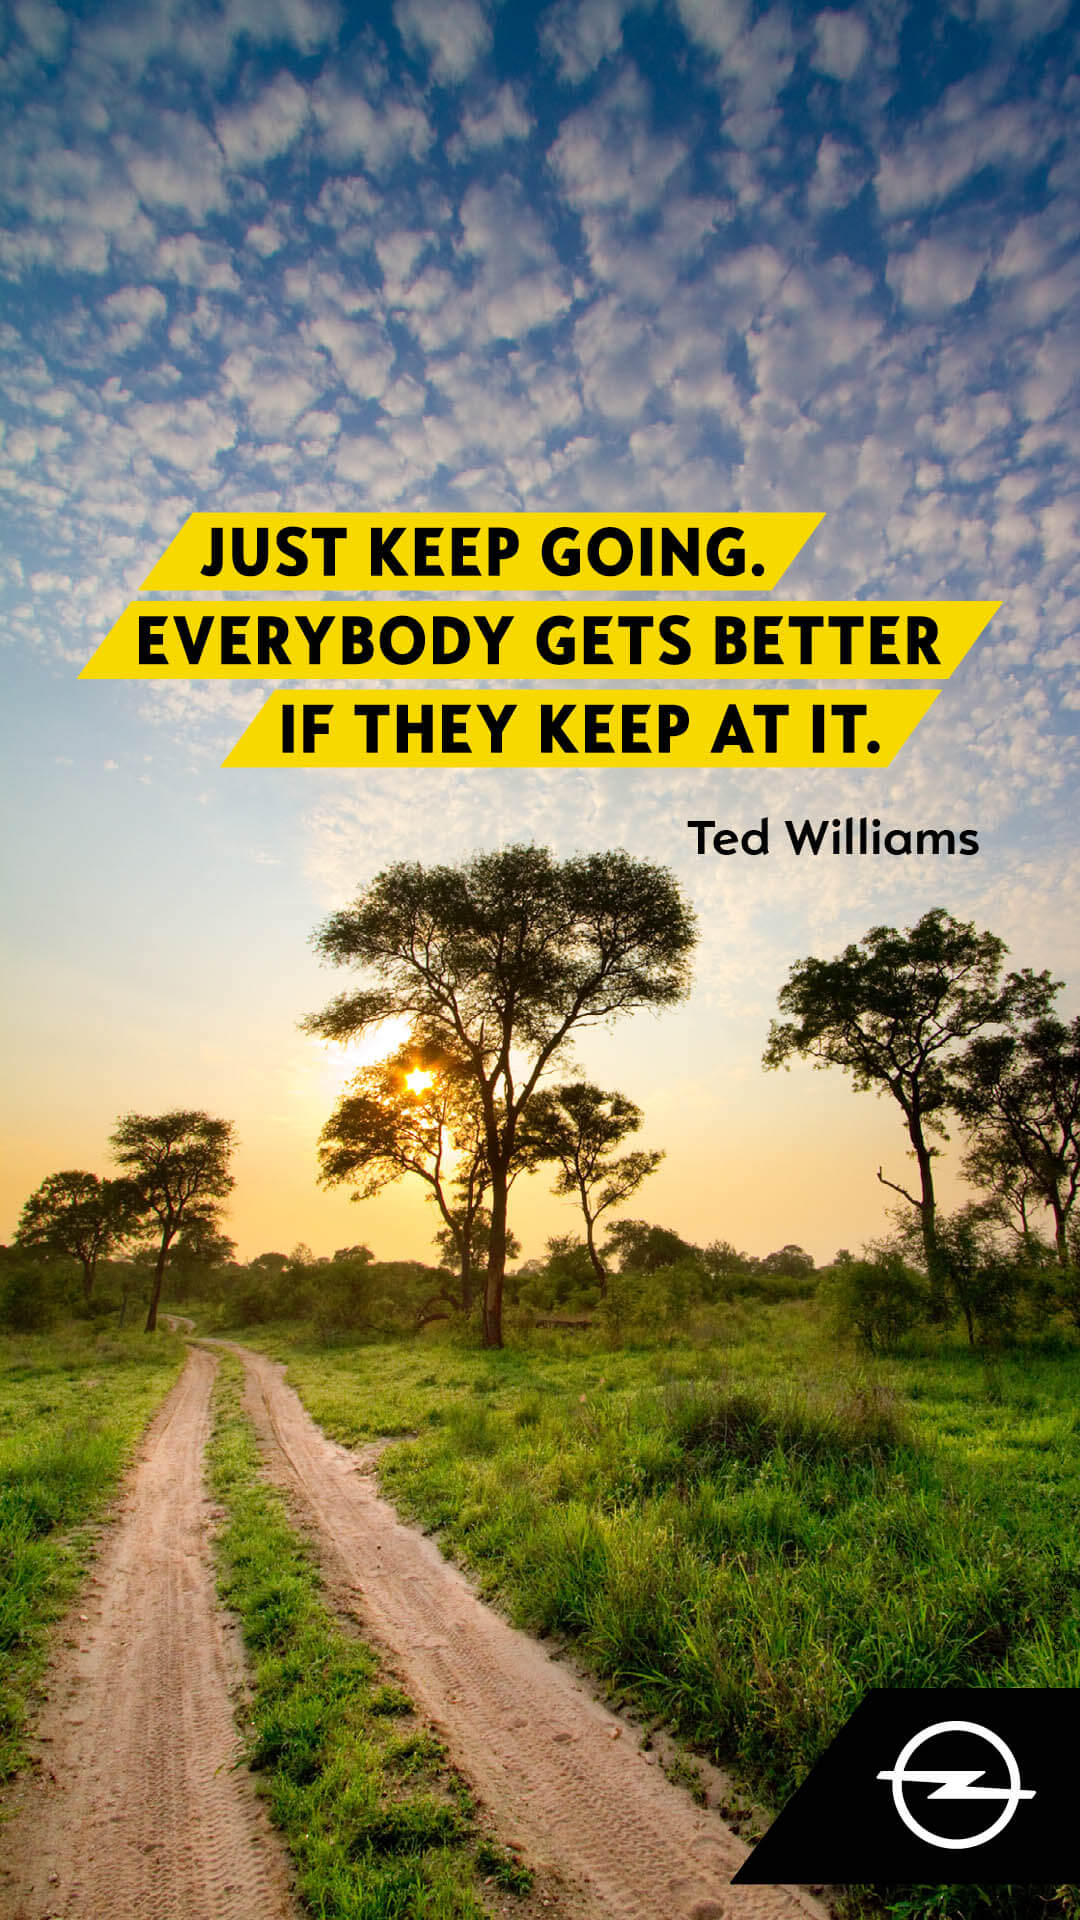 Just keep going. Everybody gets better if they keep at it.